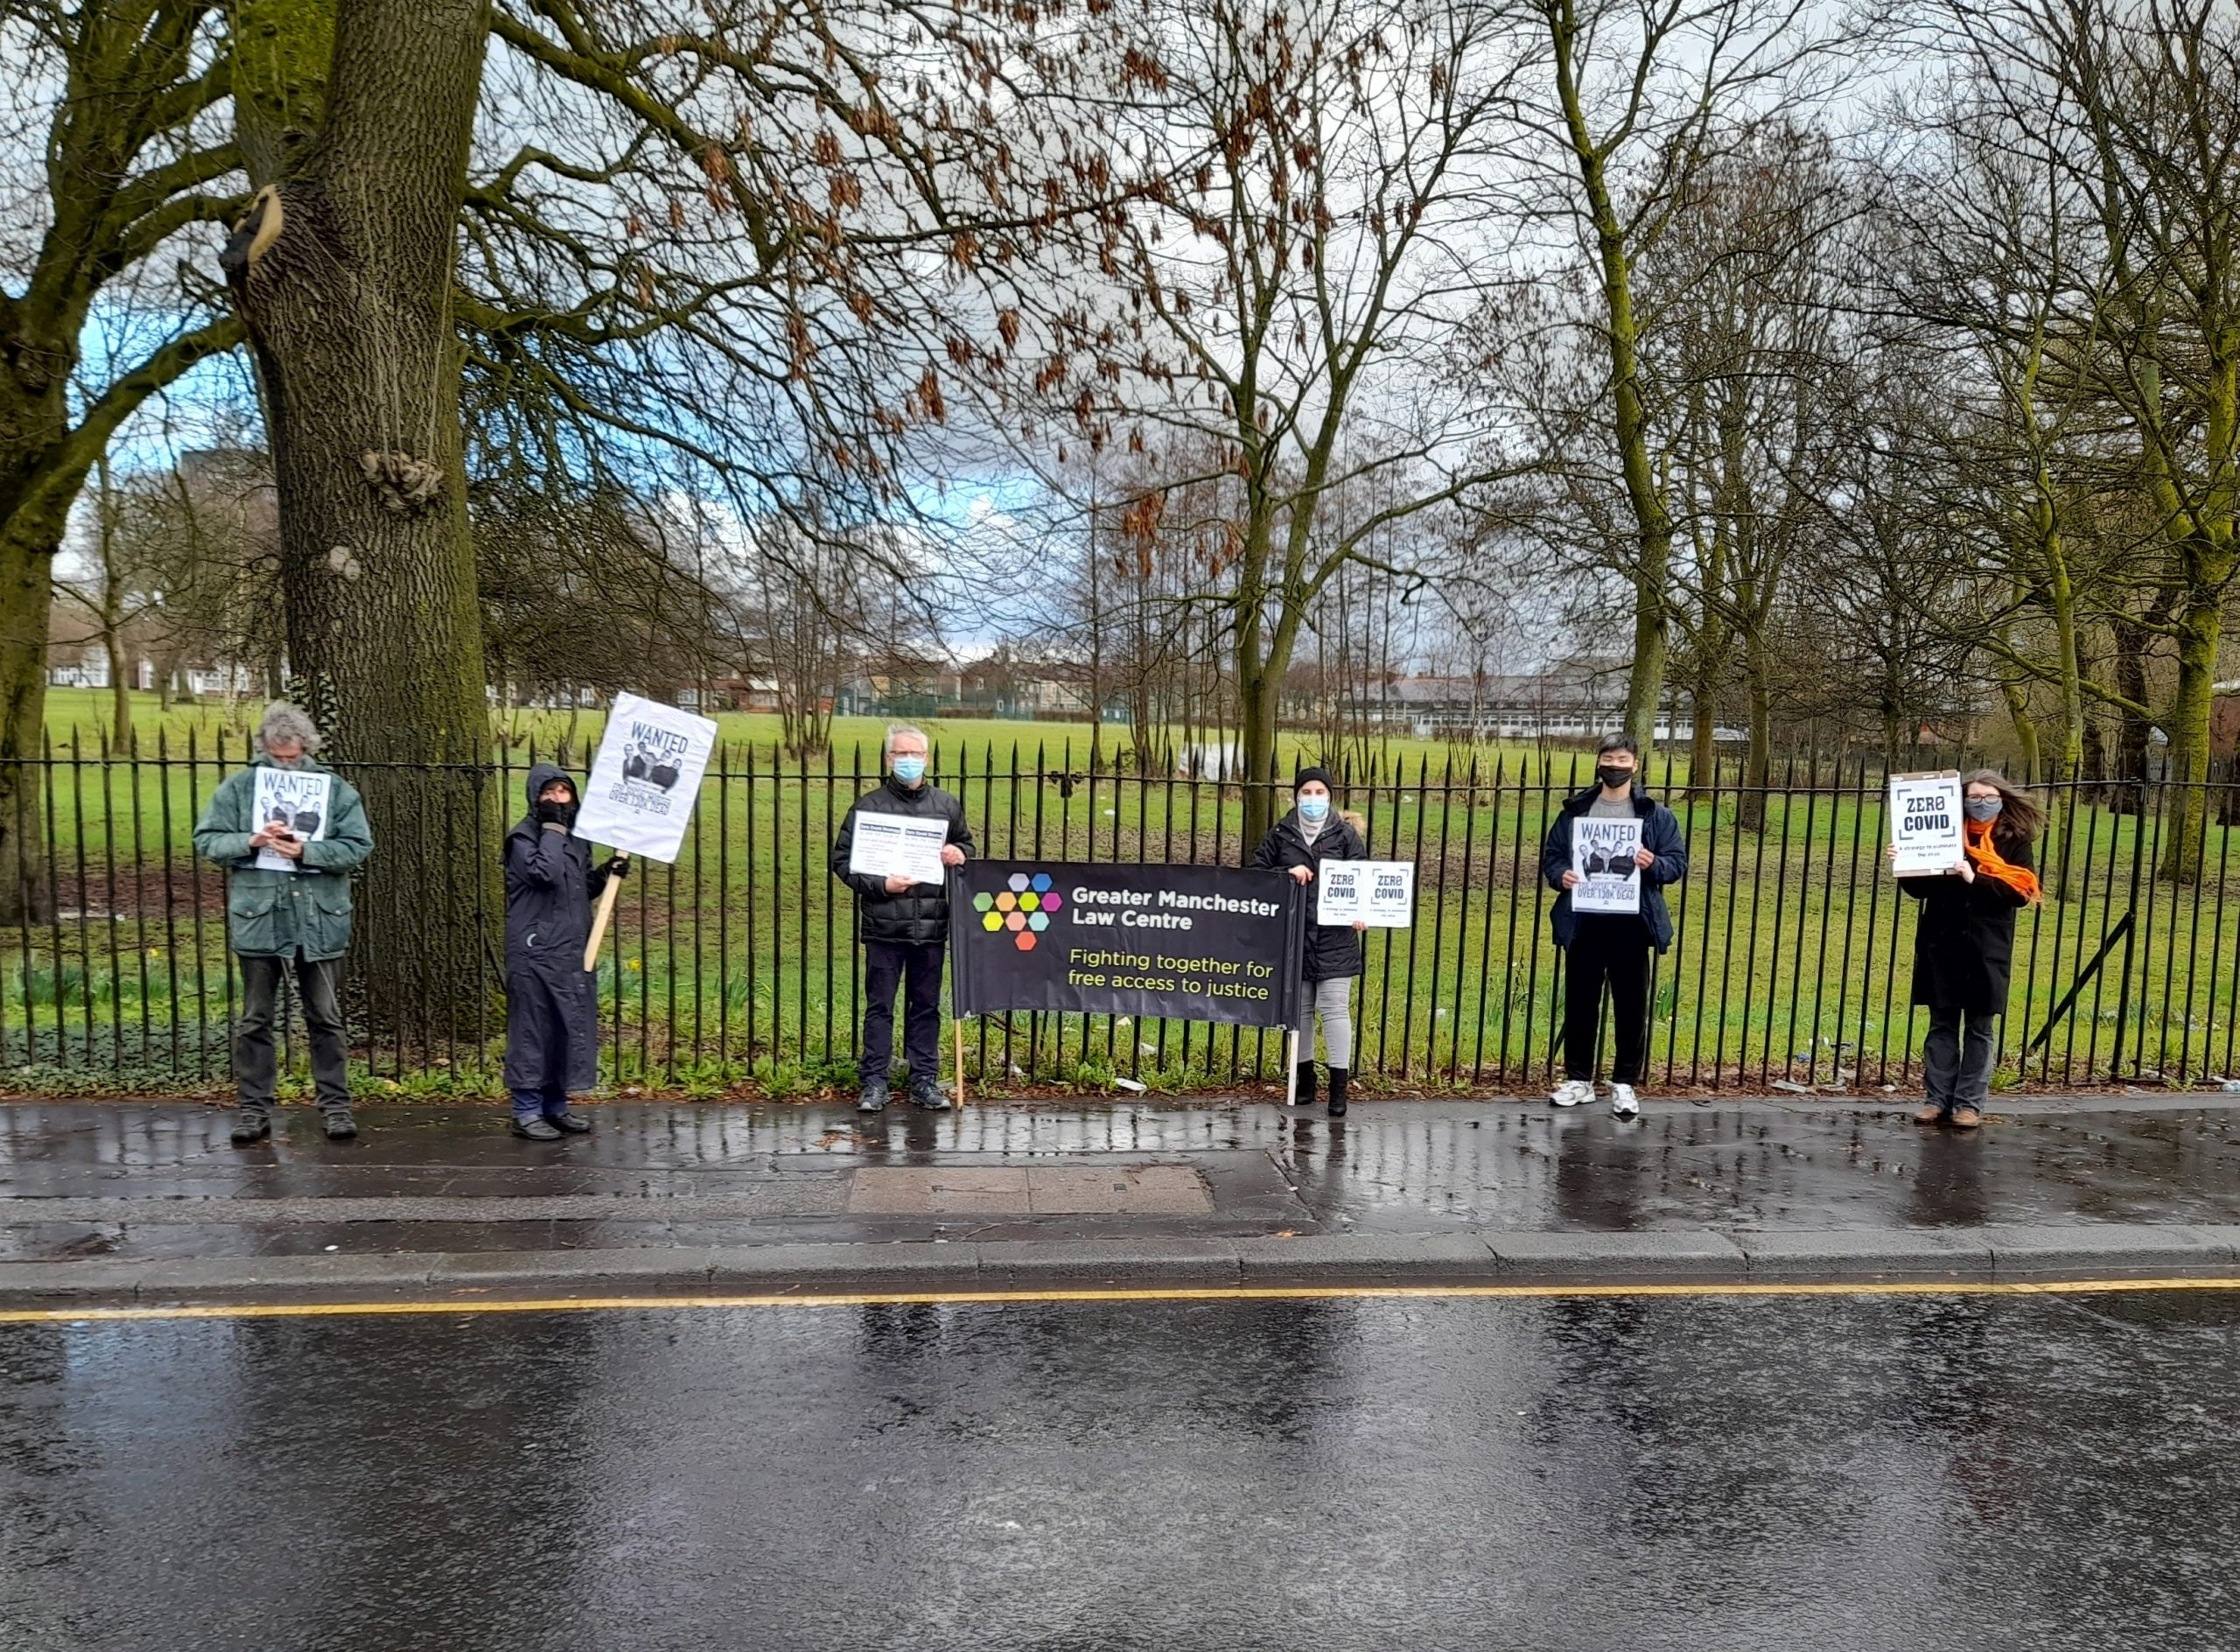 Image shows 6 people wearing masks and standing at 2m distance from one another, holding banners for Zero Covid in front of a park, with a Greater Manchester Law Centre banner in the middle.